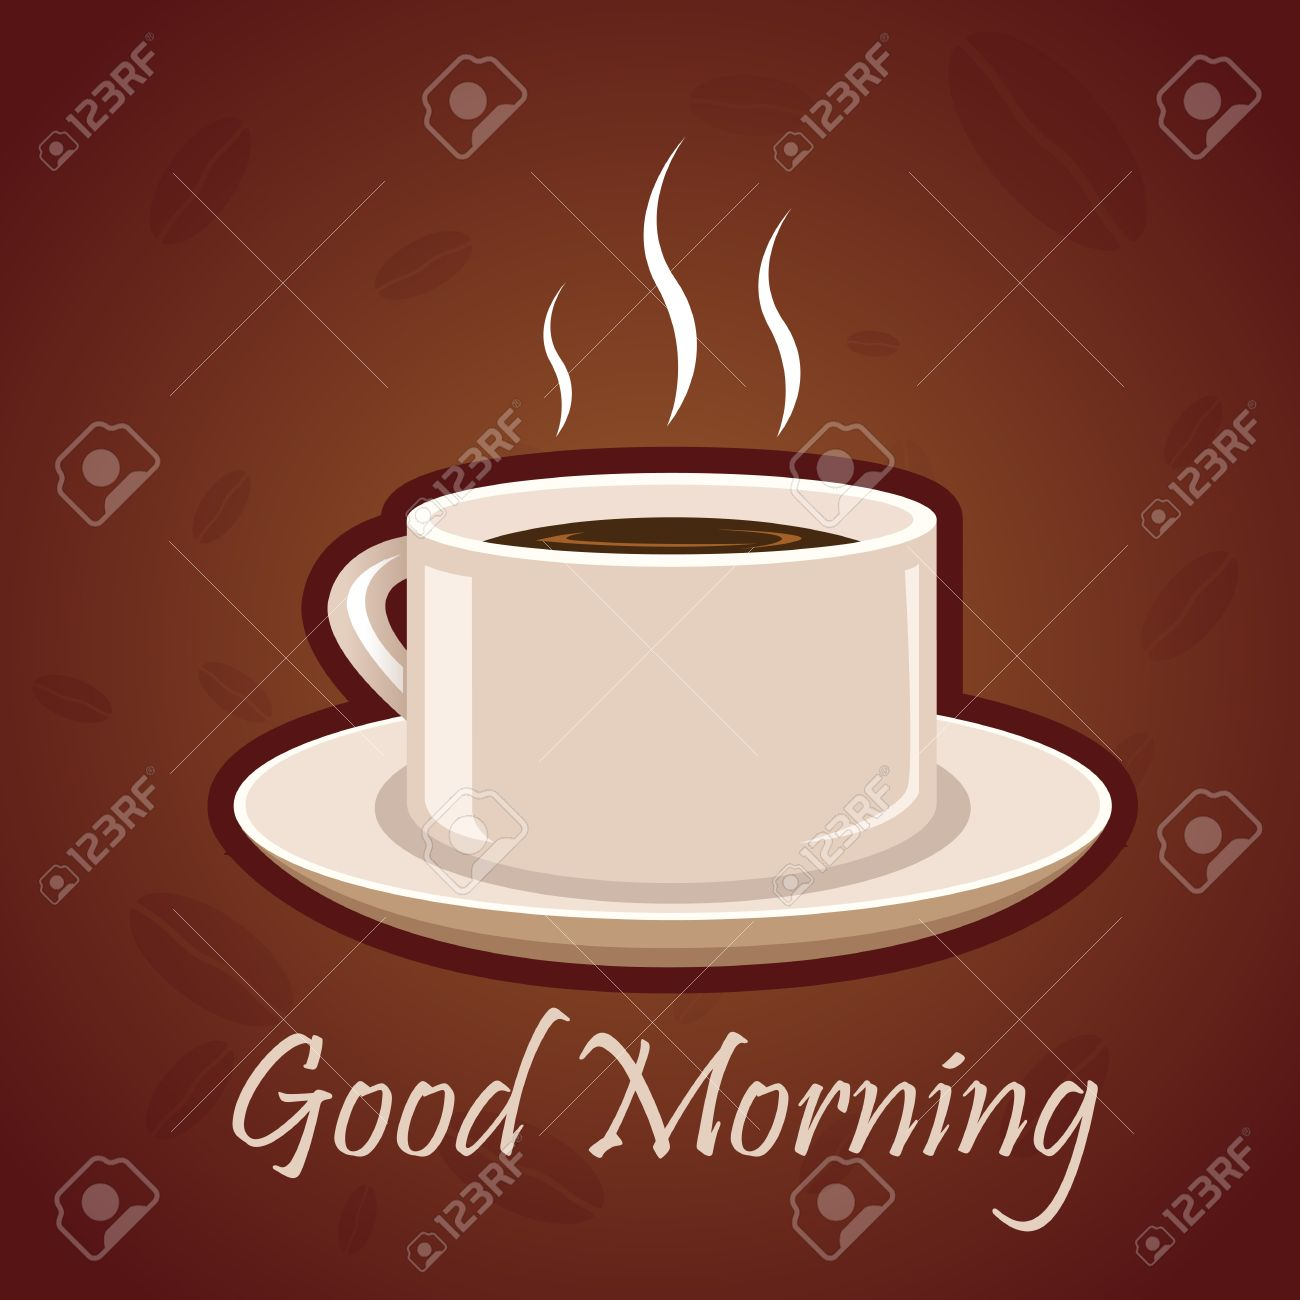 Charming Illustration Of Good Morning Card With Hot Coffee On White Background Stock  Vector   8302652